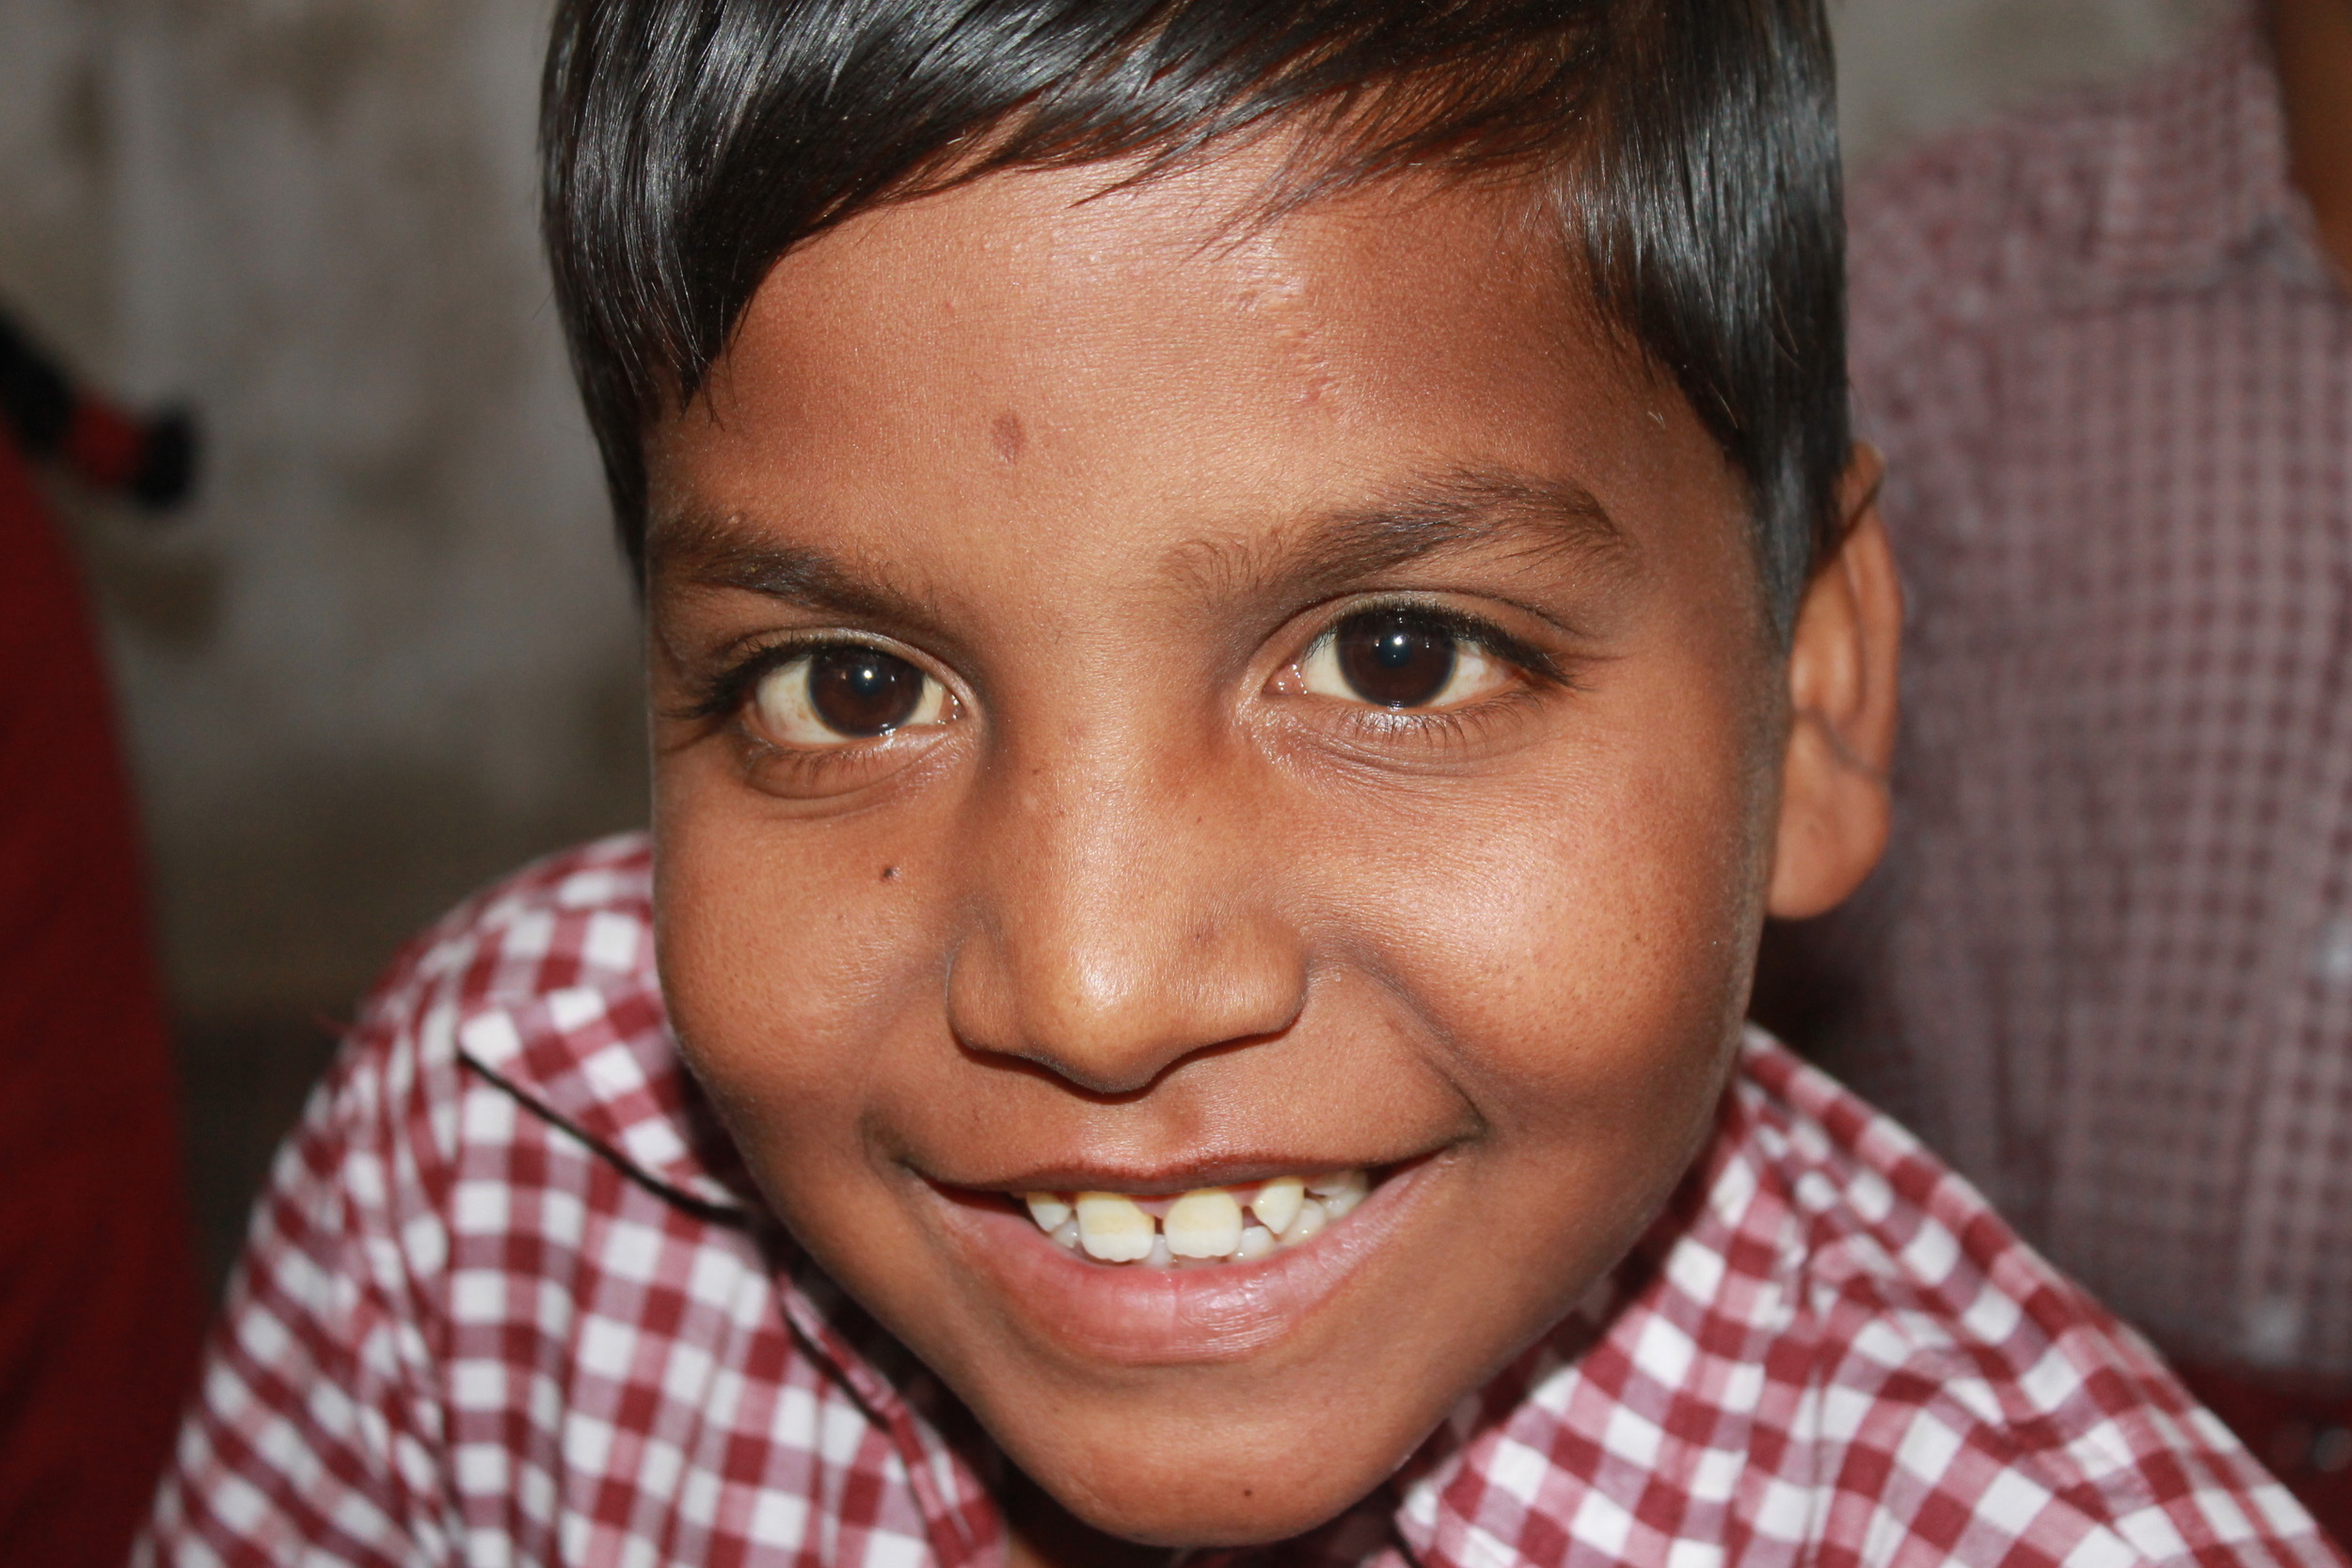 Vishal, 11 years old